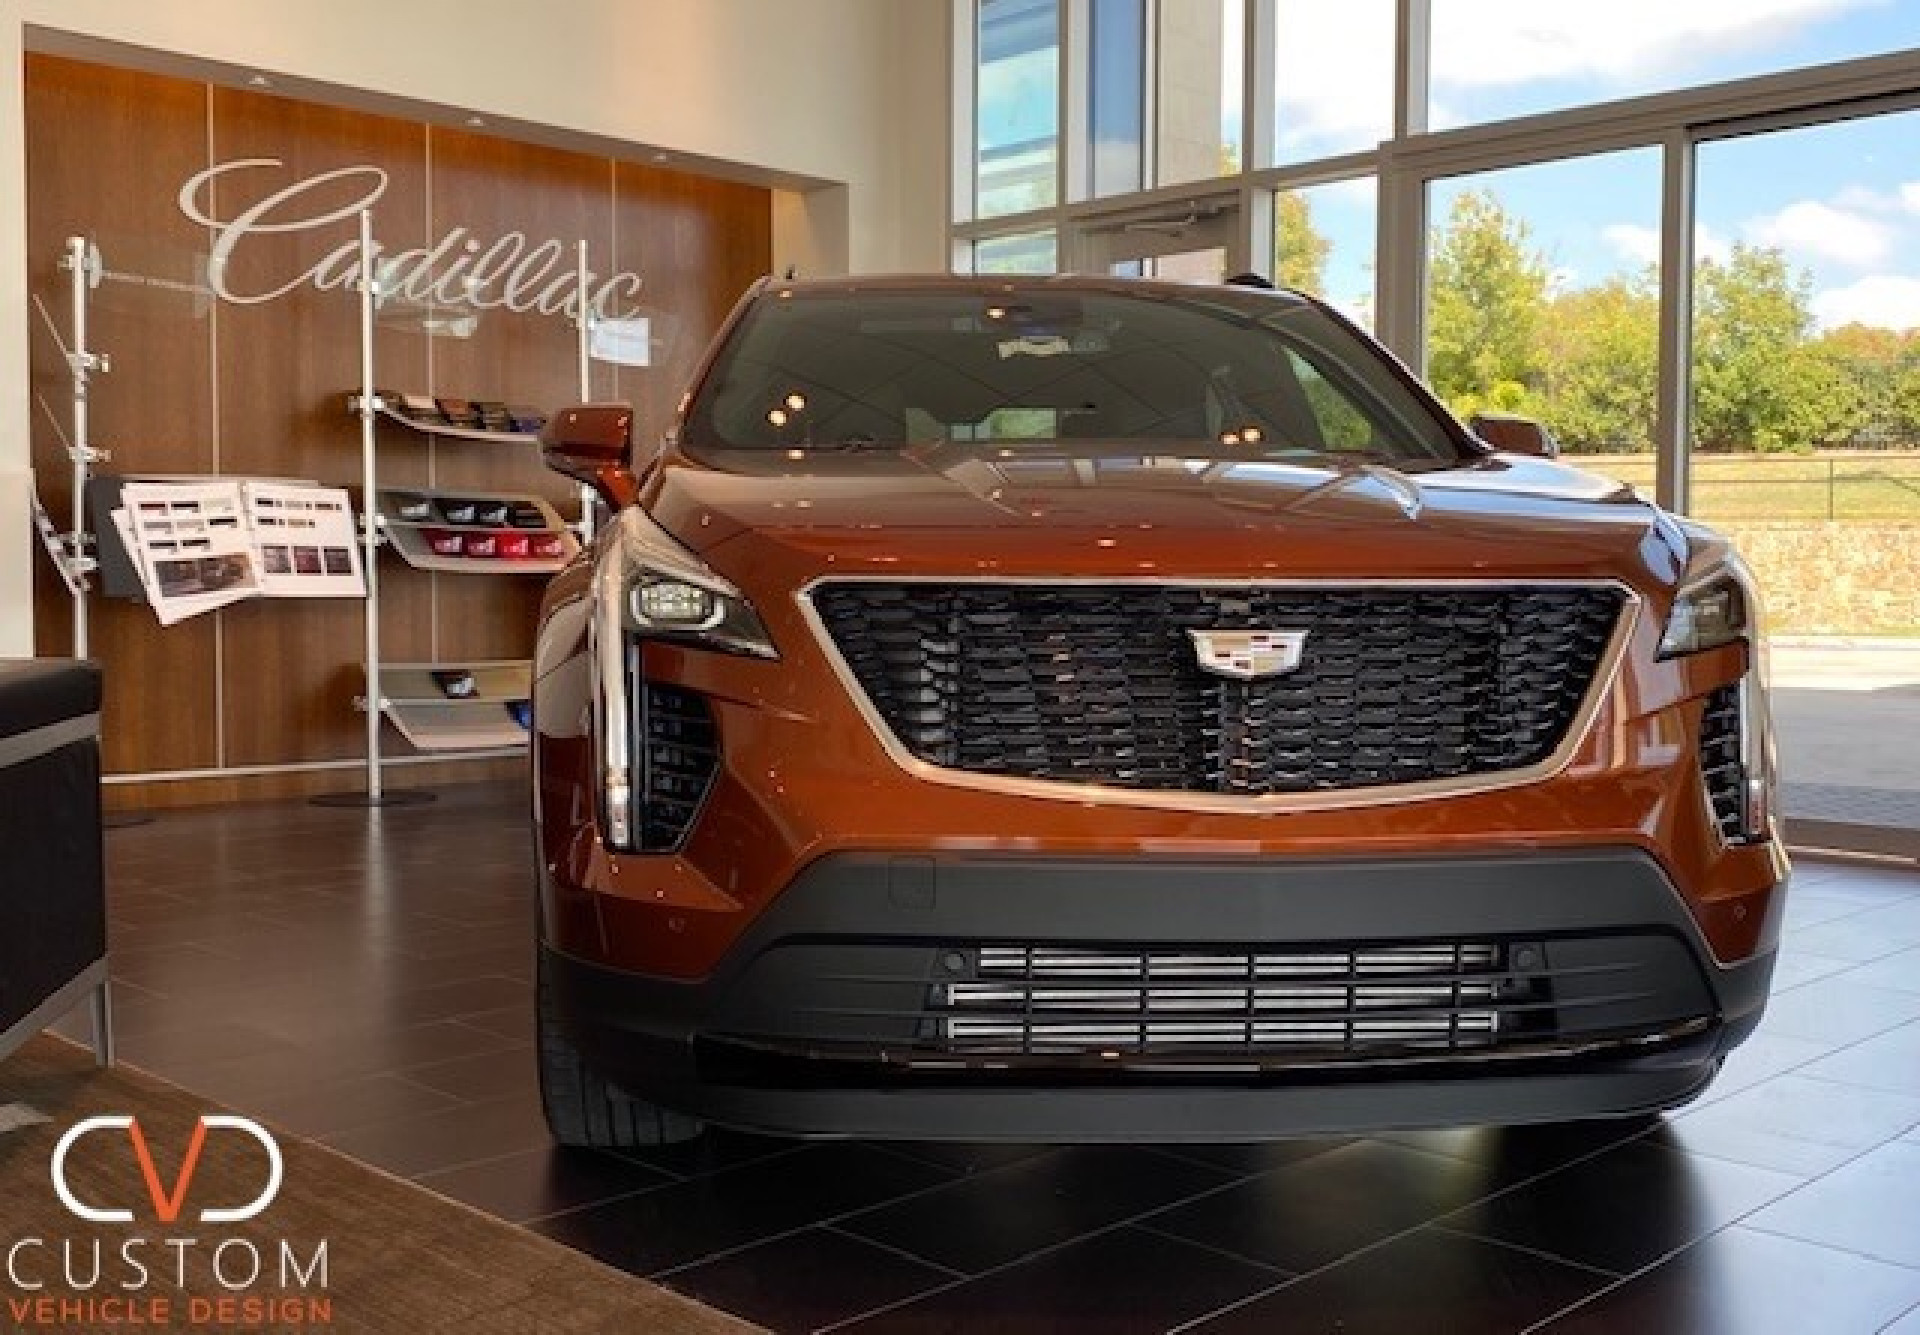 2021 Cadillac XT4 with Vogue VT383 wheels